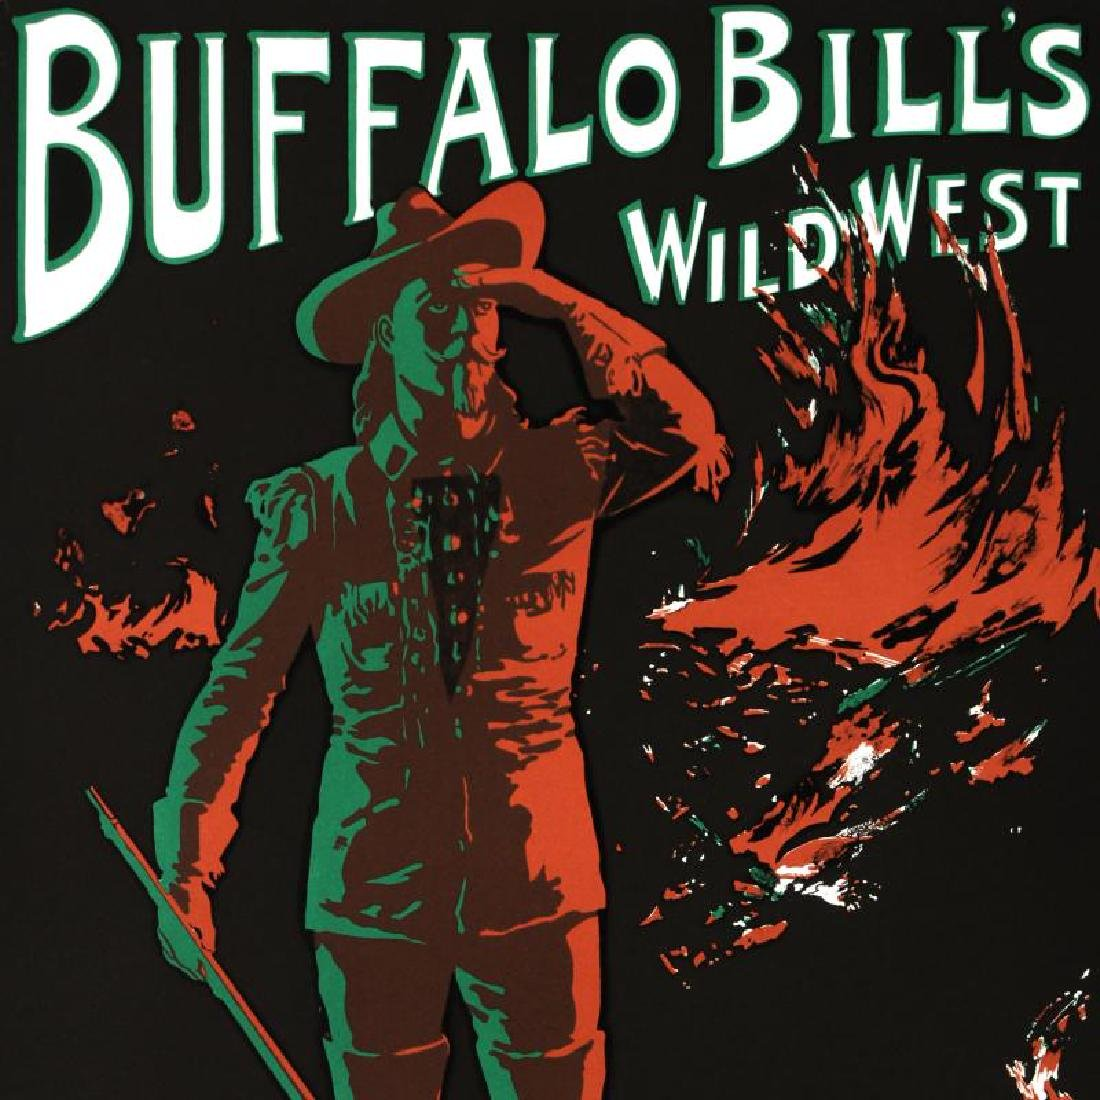 """Buffalo Bills Wild West"" Hand Pulled Lithograph by the - 4"